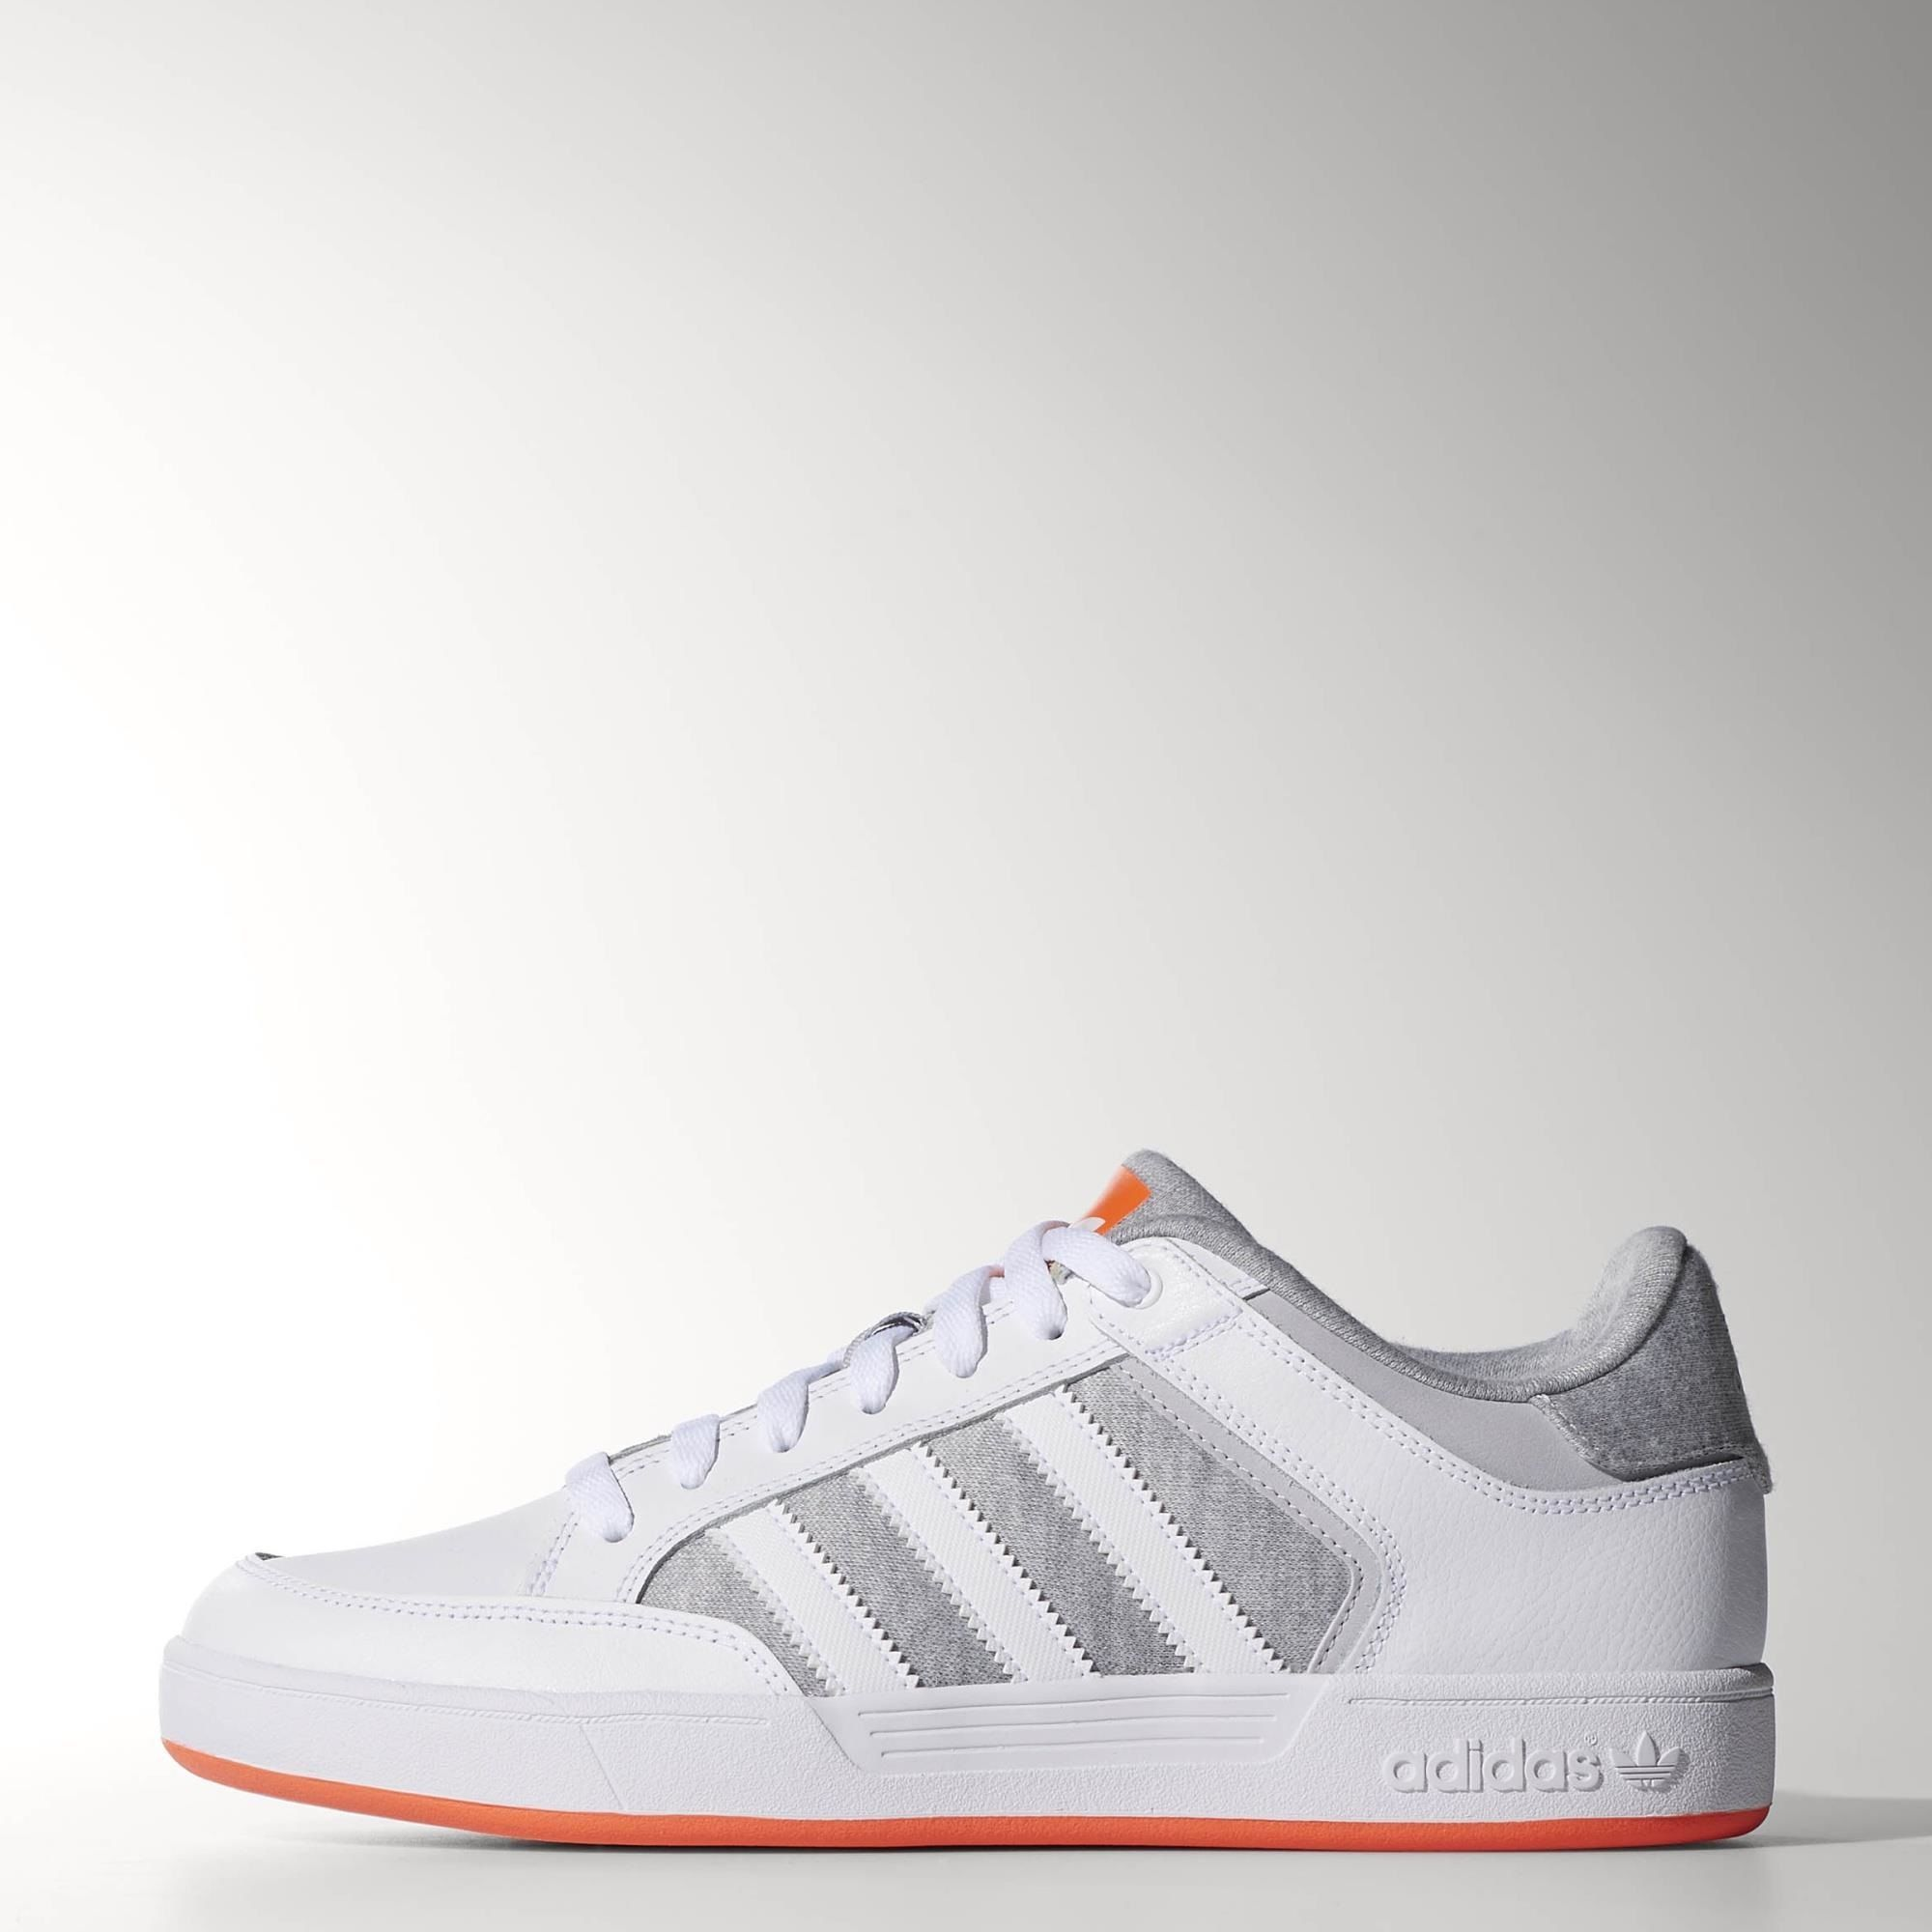 ... 1000+ images about Sneakers on Pinterest | Adidas zx flux, Originals  and Shoes